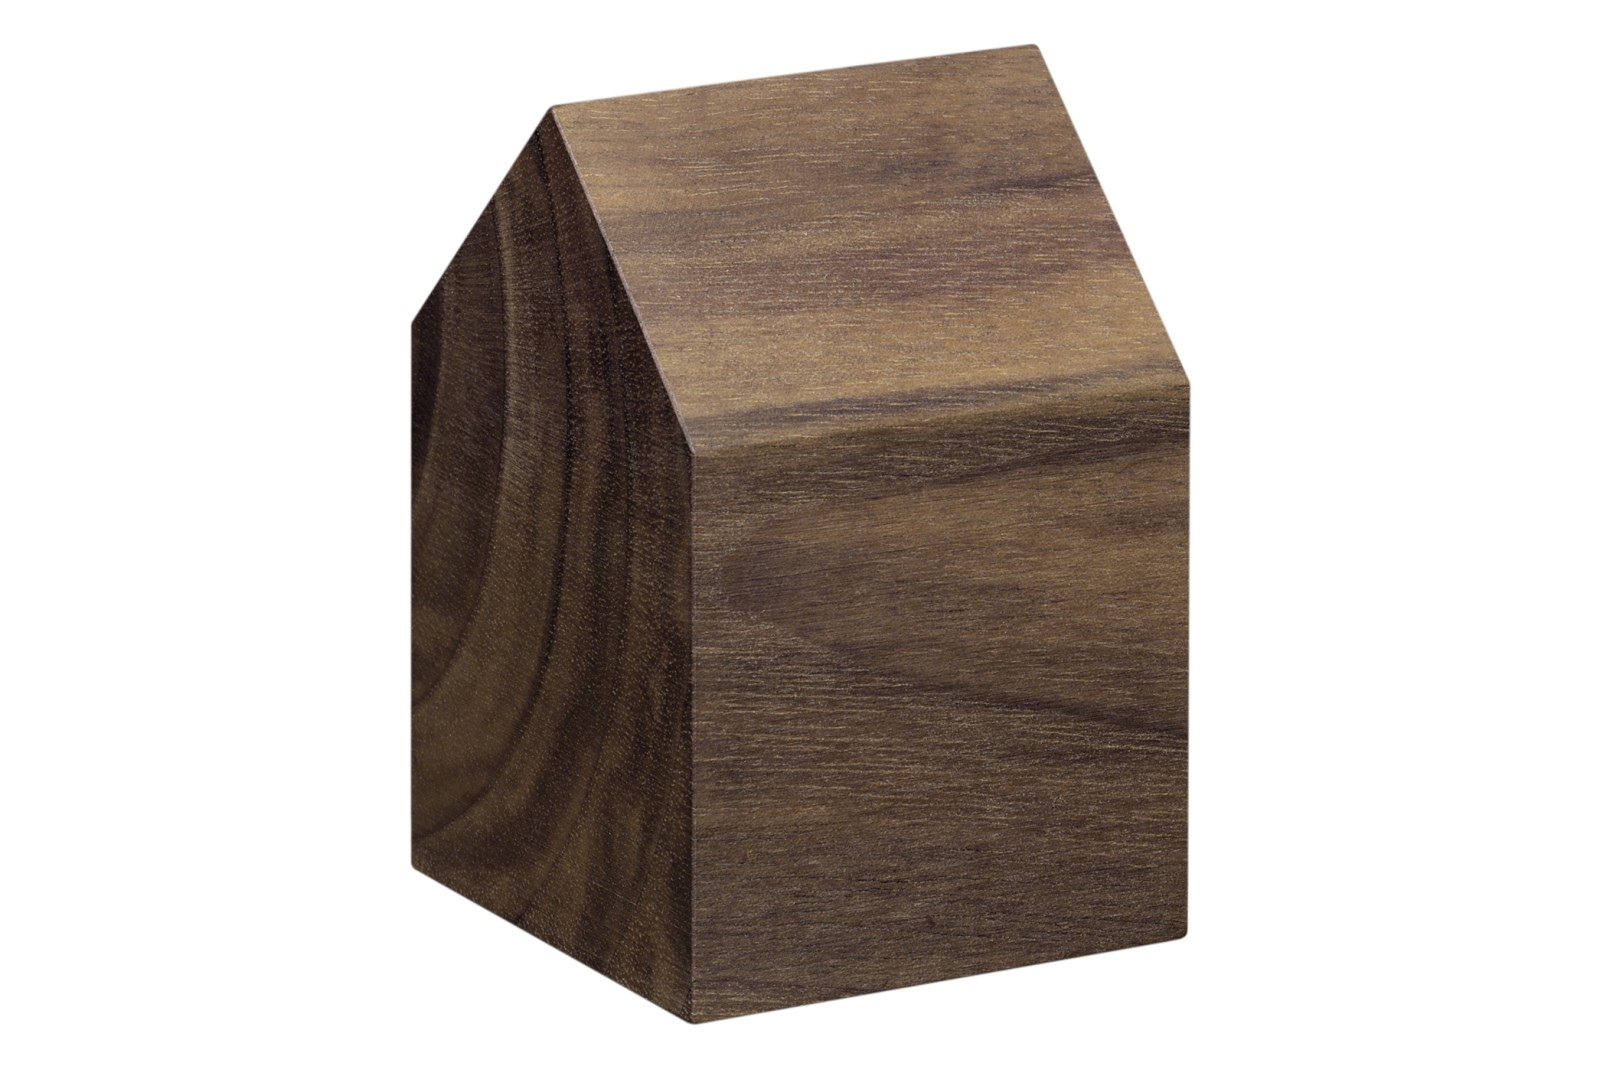 AC10 Haus Paper Weight, Saddle Roof Oiled Walnut, Short